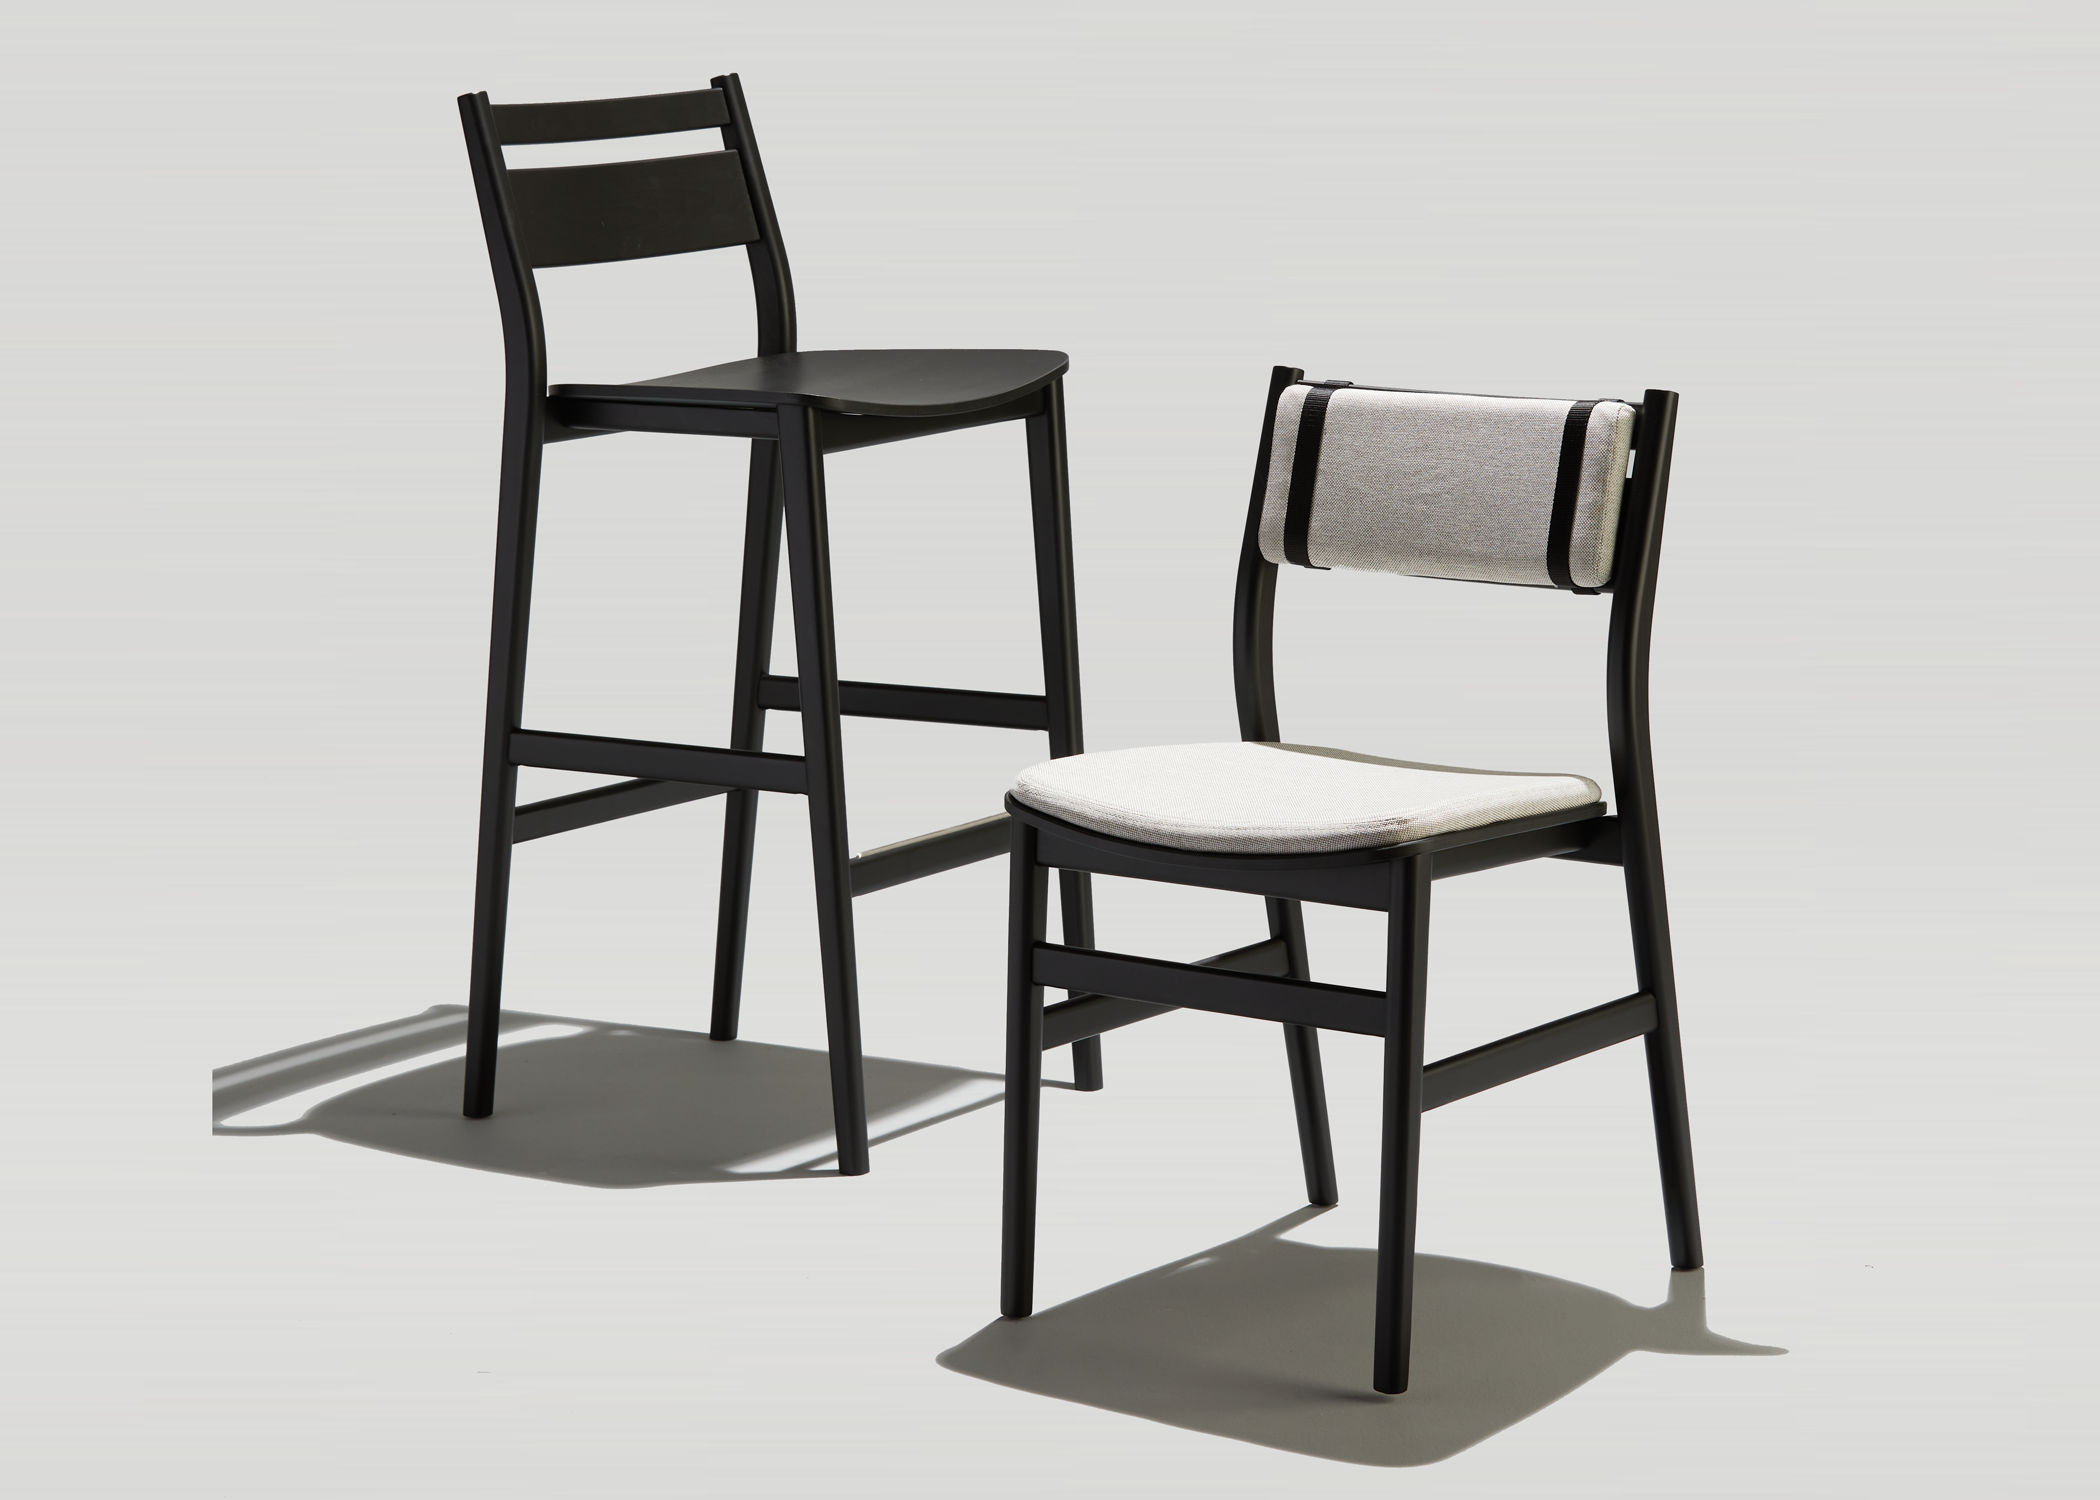 Sigsbee_Wood-Chair_Barstool_Black